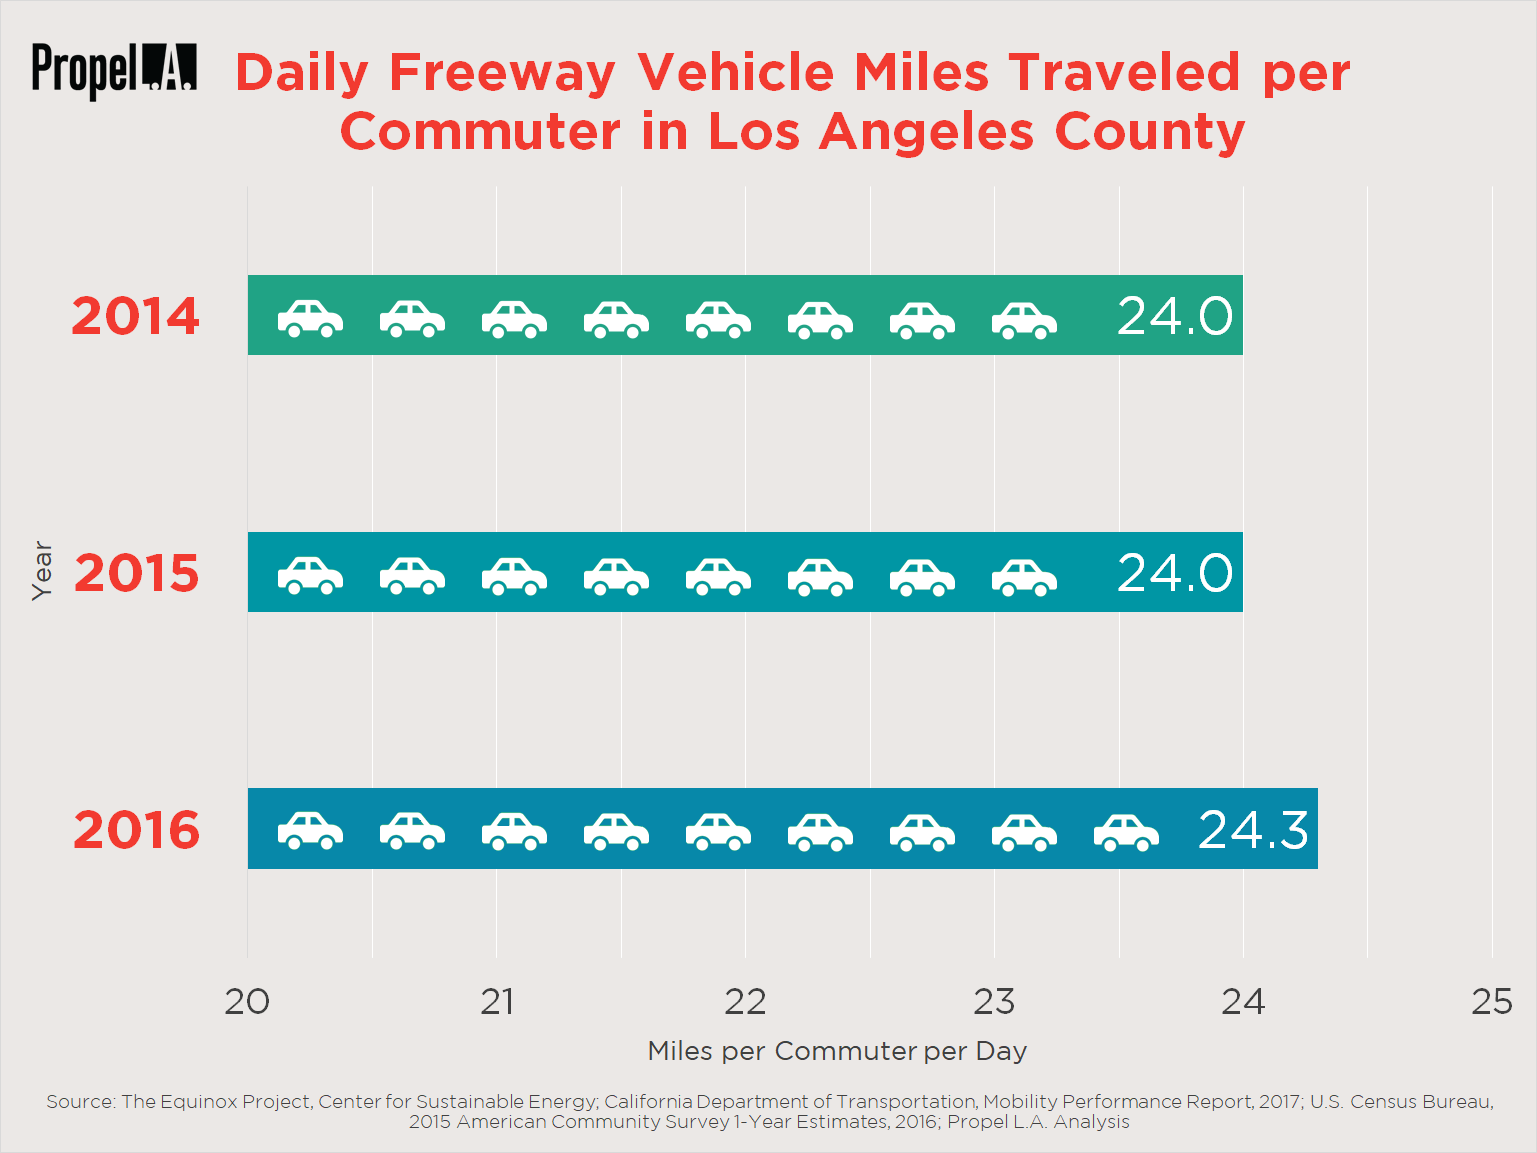 Daily Freeway Vehicle Miles Traveled (VMTs) per Commuter in Los Angeles County